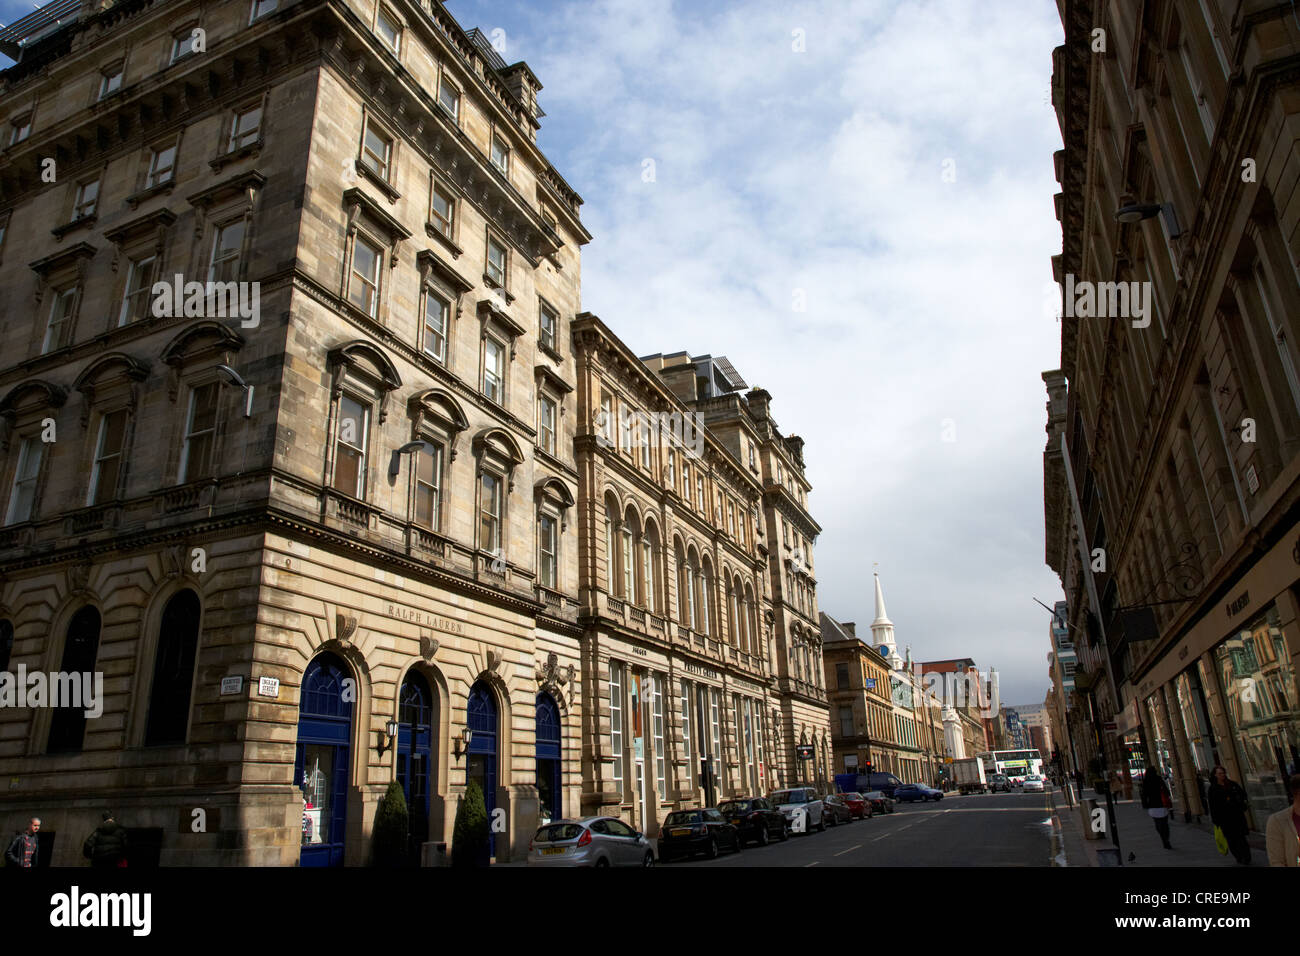 ingram street upmarket shopping street in merchant city glasgow scotland uk - Stock Image